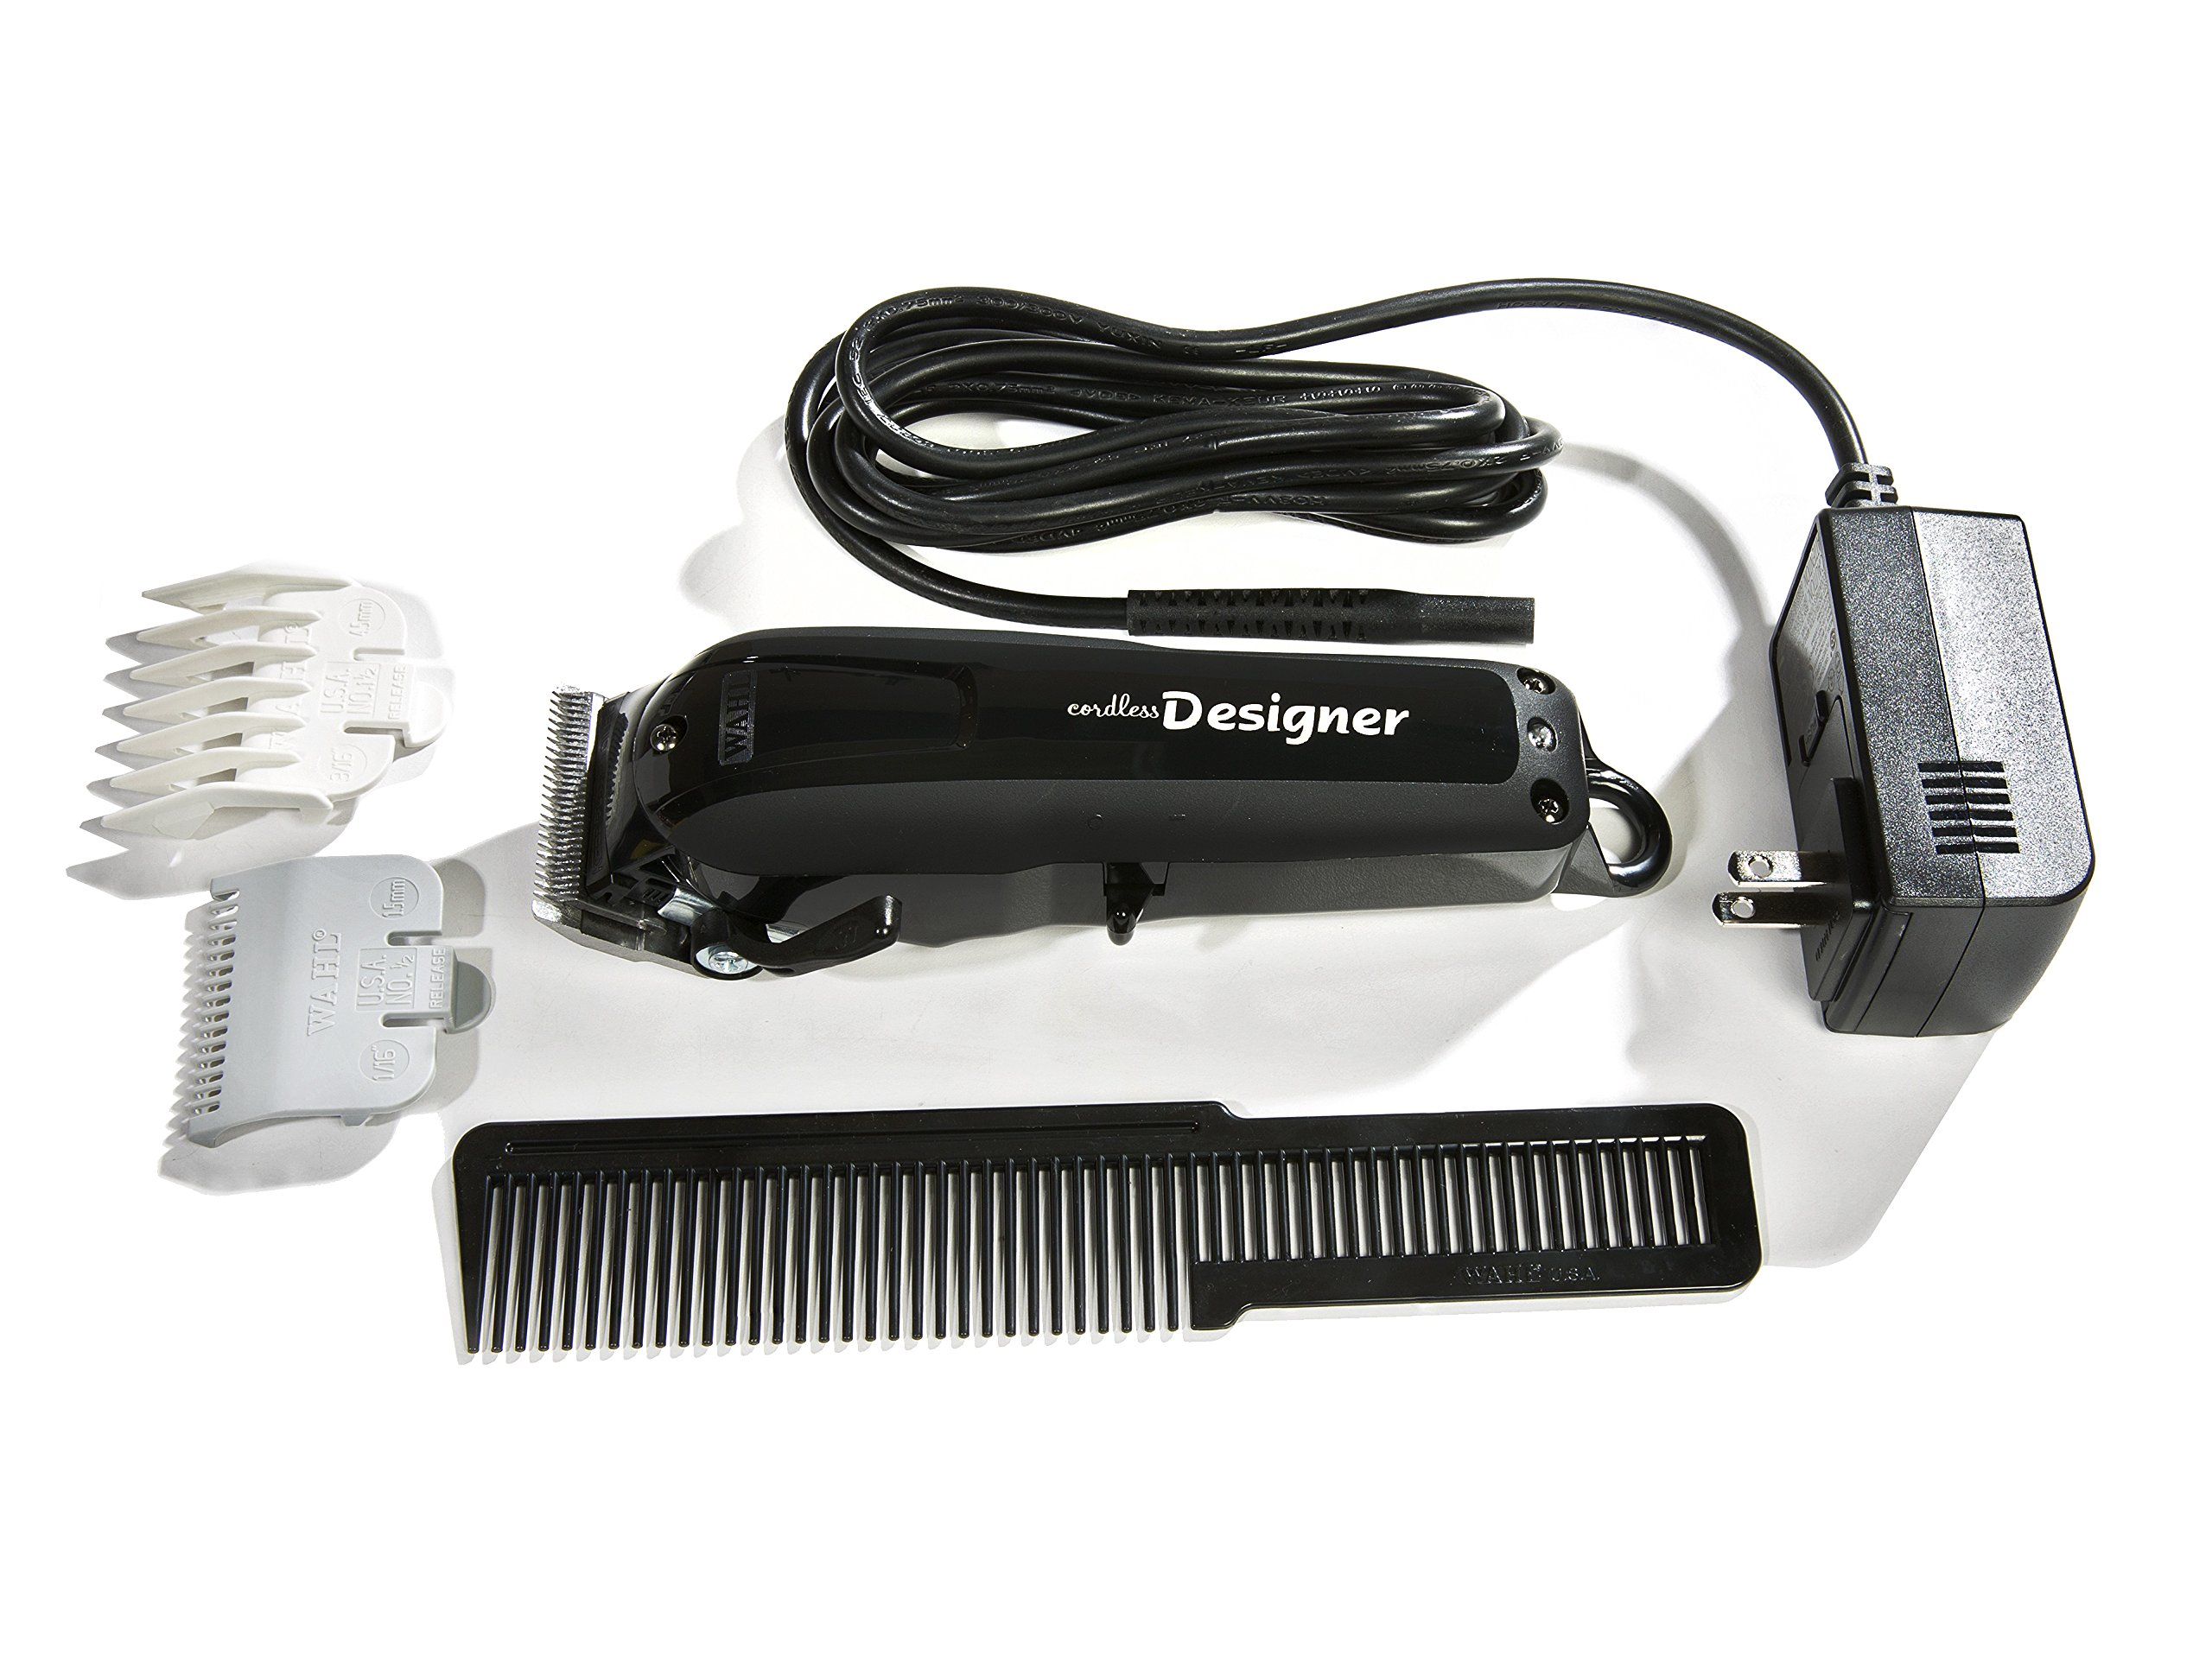 Wahl Professional Cordless Designer Clipper #8591 – 90 Minute Run Time – Accessories Included by Wahl Professional (Image #3)